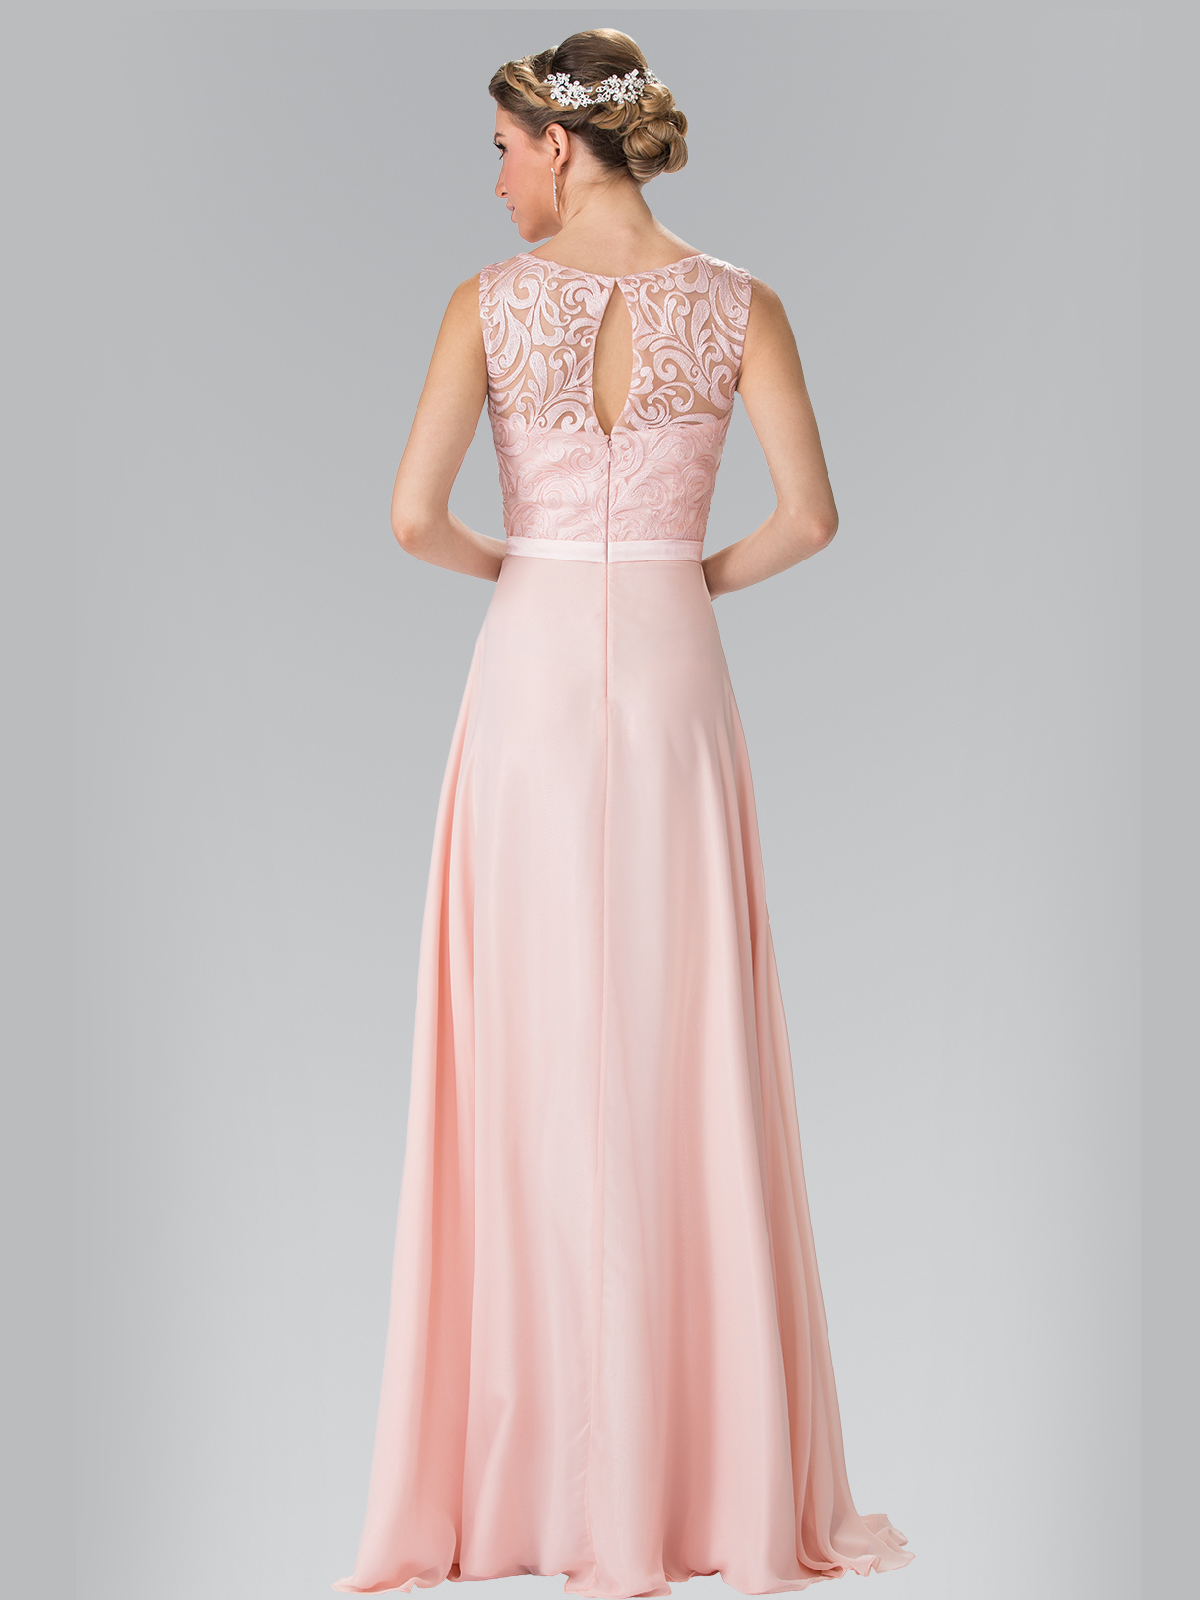 Embroidery Top Chiffon Long Evening Dress Sung Boutique L A